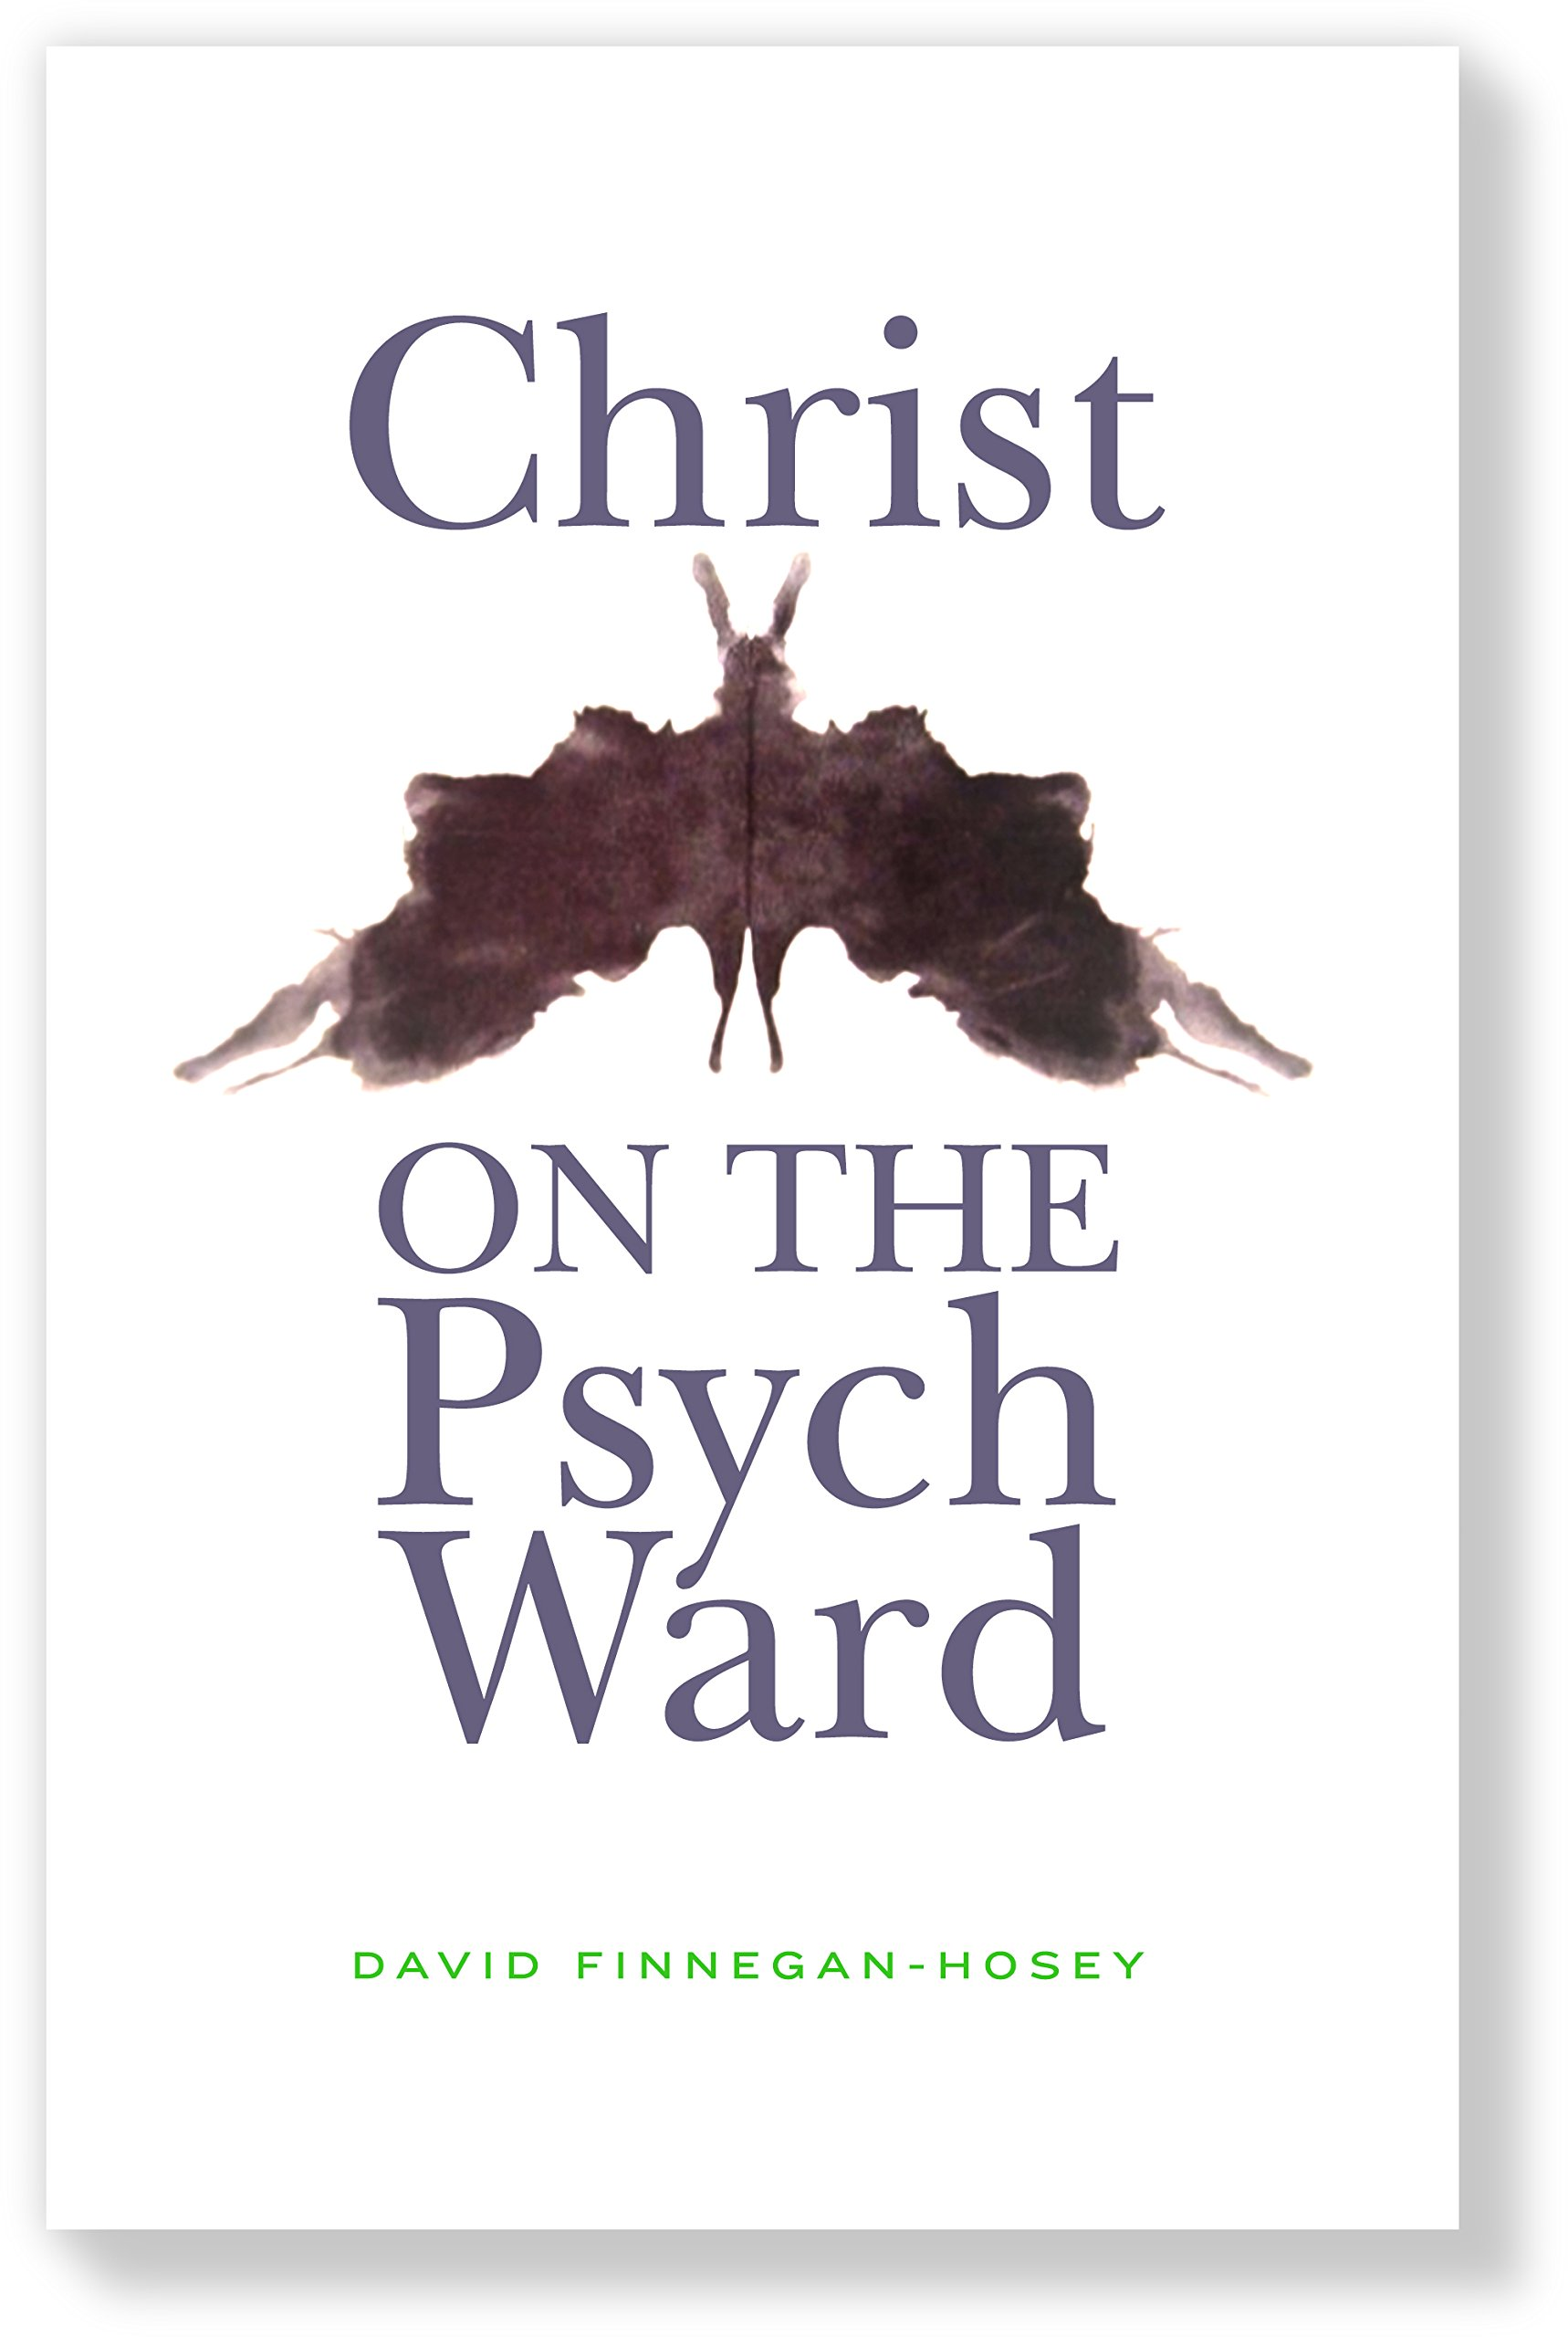 Christ on the psych ward book photo.jpg